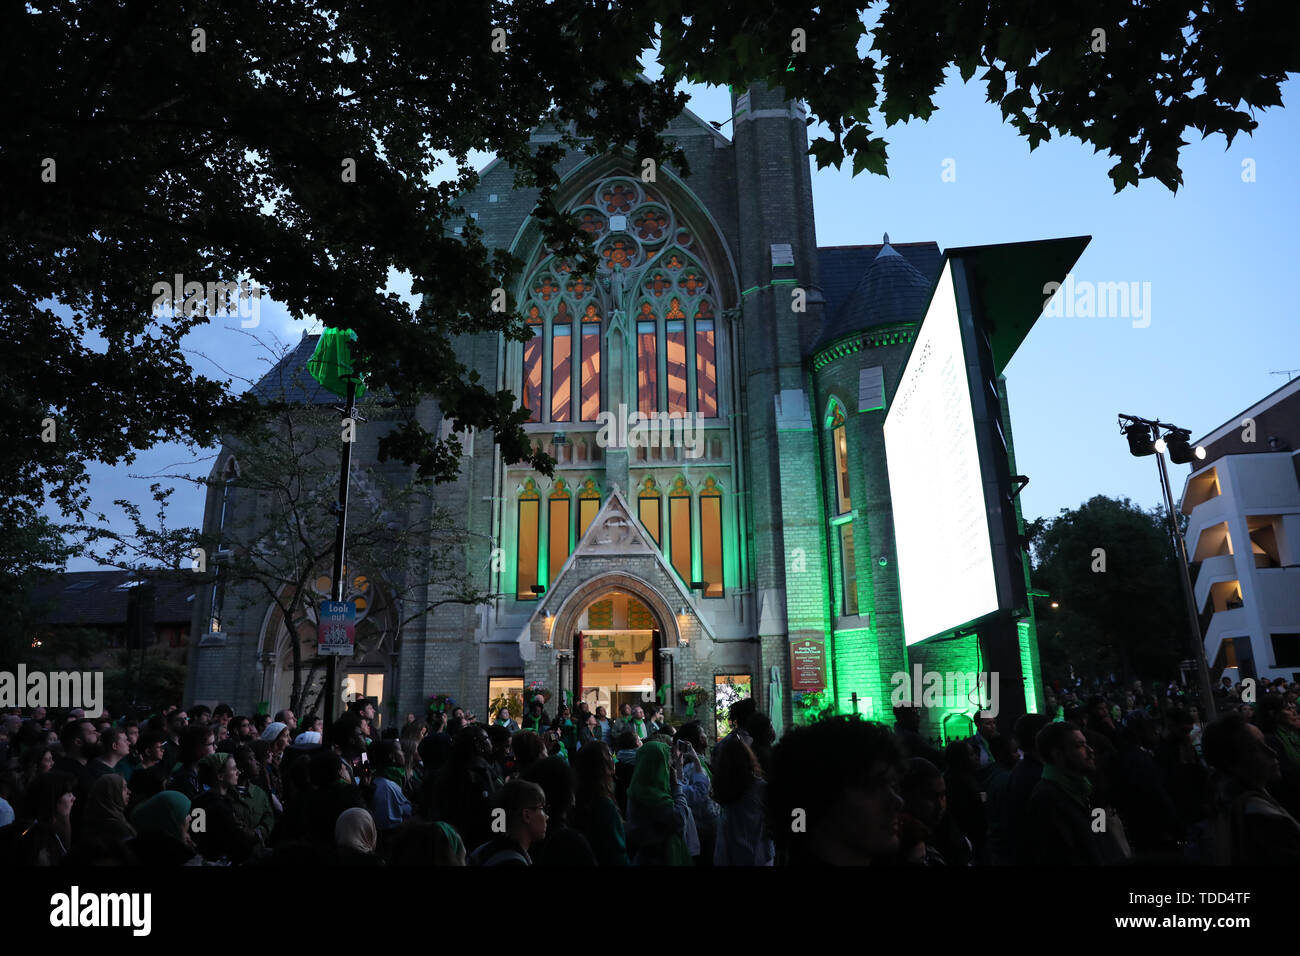 People take part in a vigil outside Notting Hill Methodist Church near Grenfell Tower, London, to mark the two-year anniversary of the tower block fire. - Stock Image